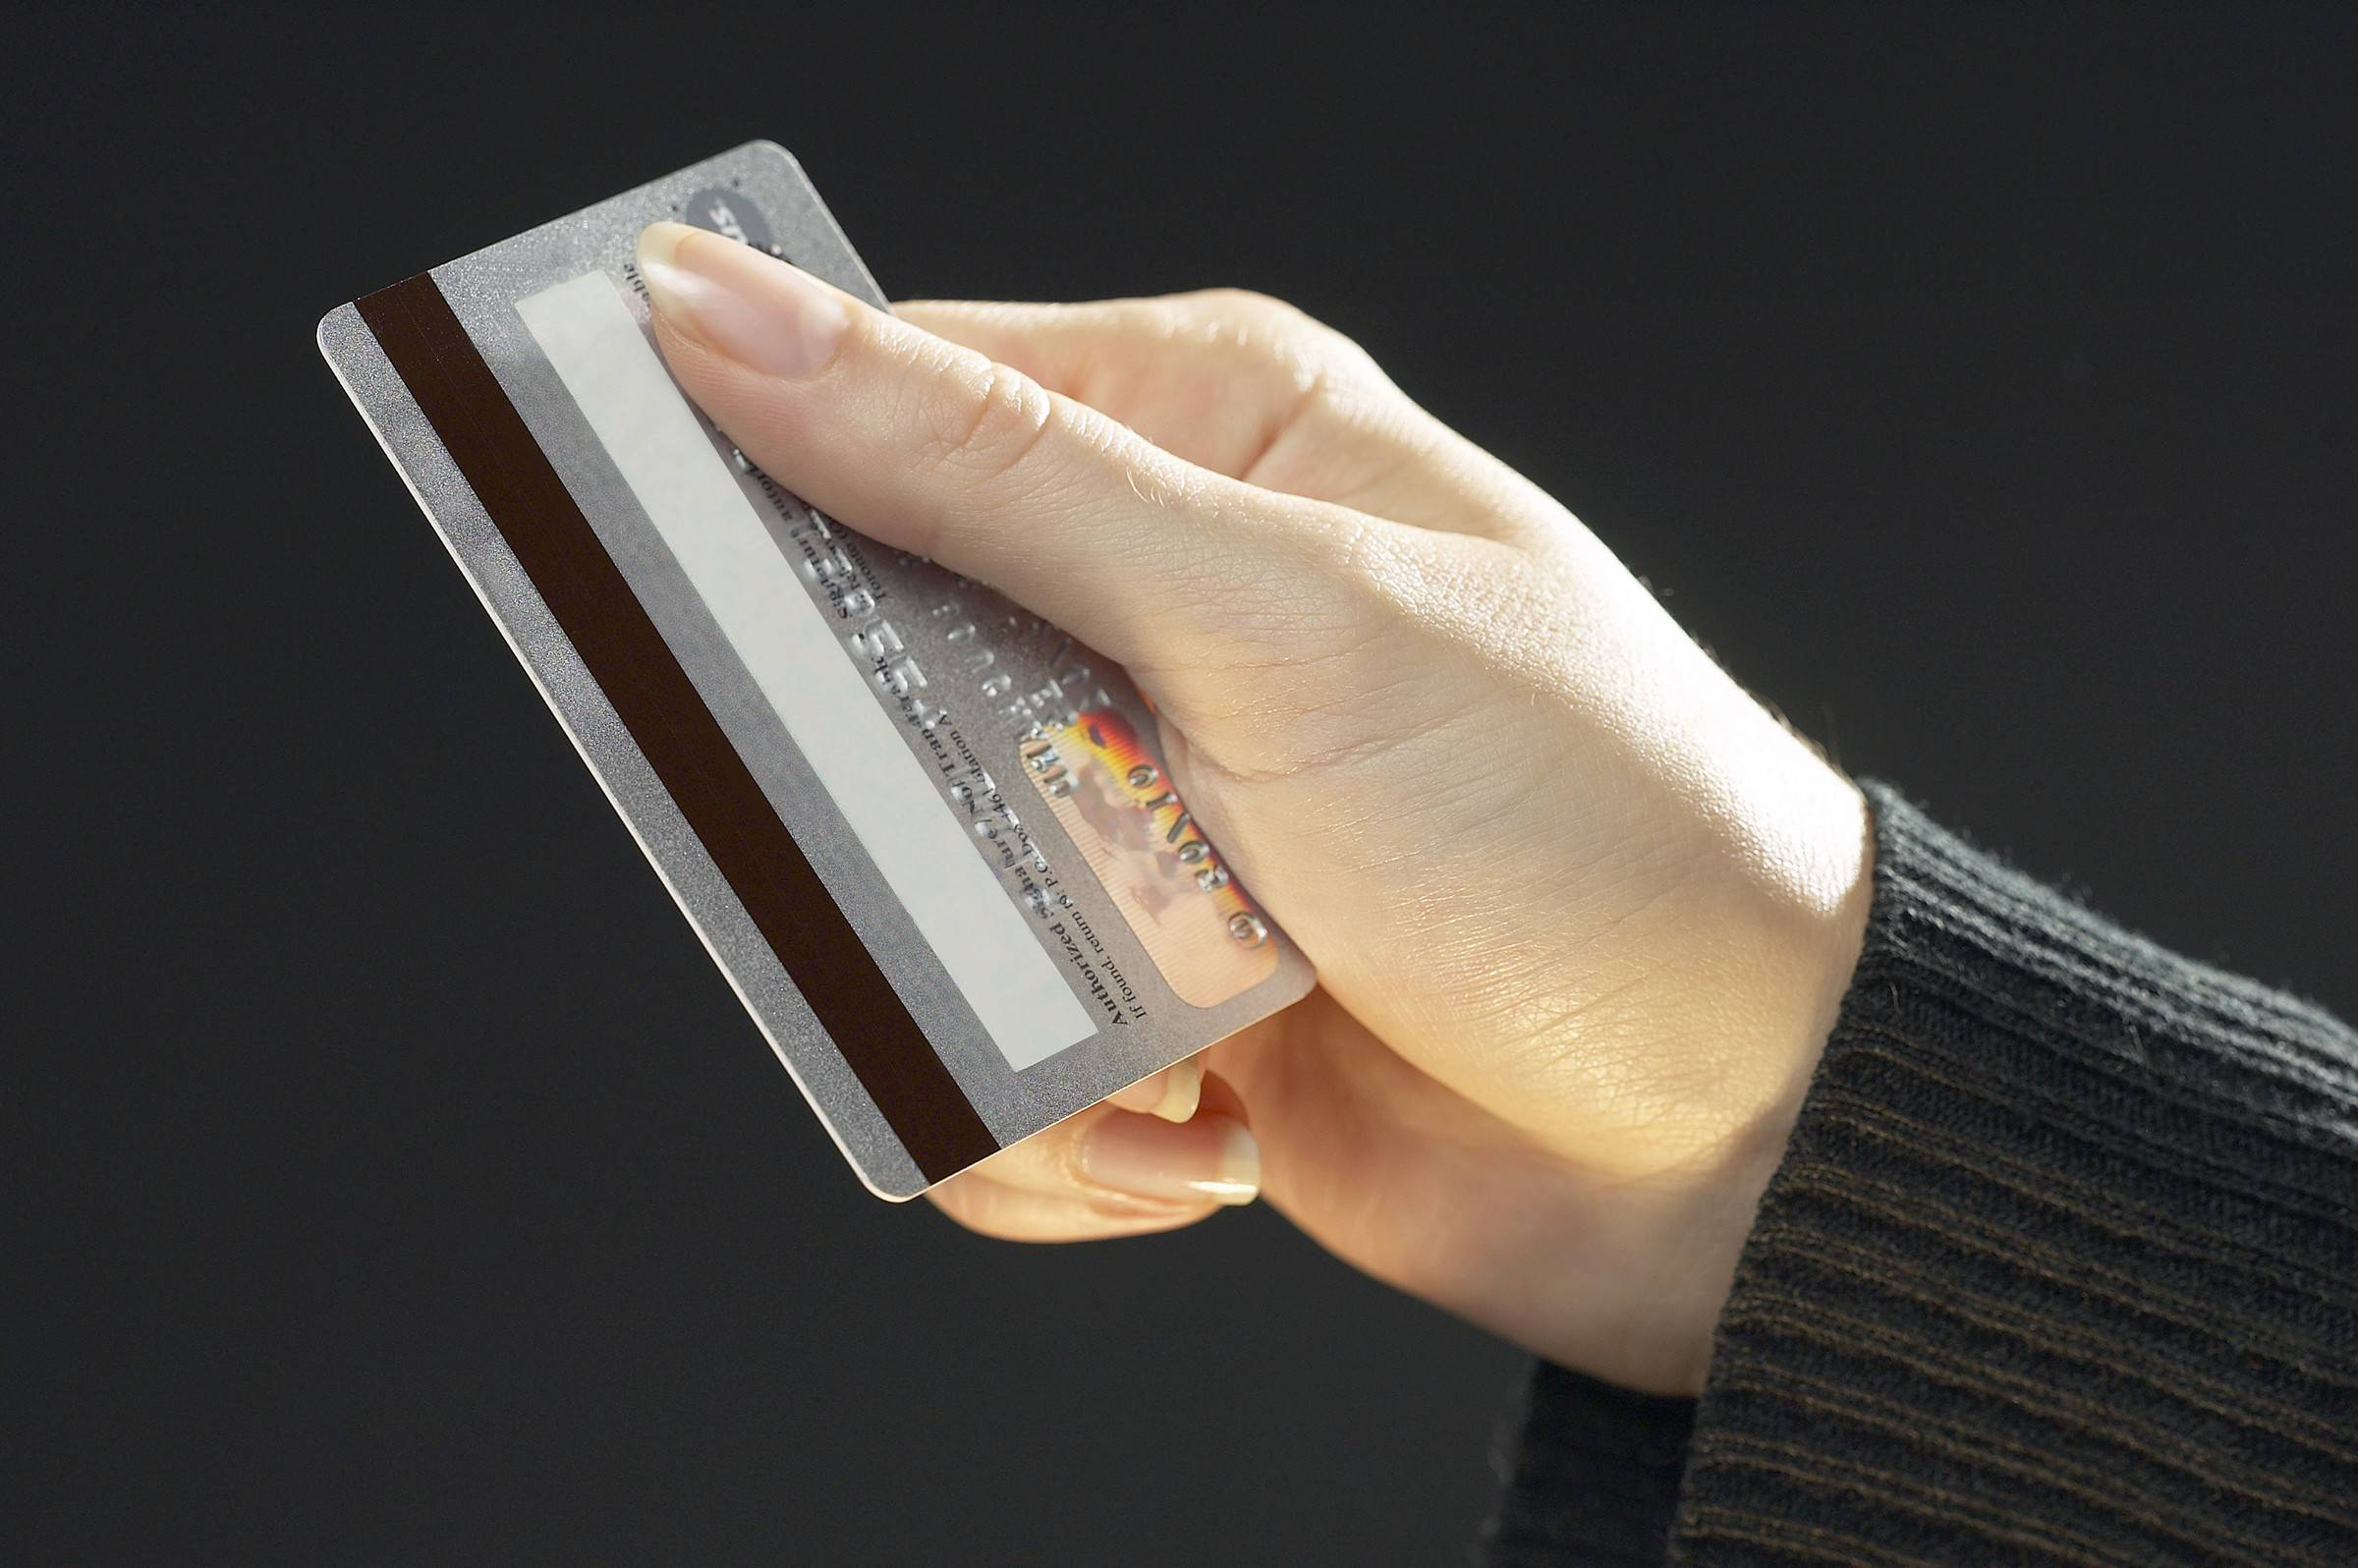 The credit card industry is trying to make transactions more secure.